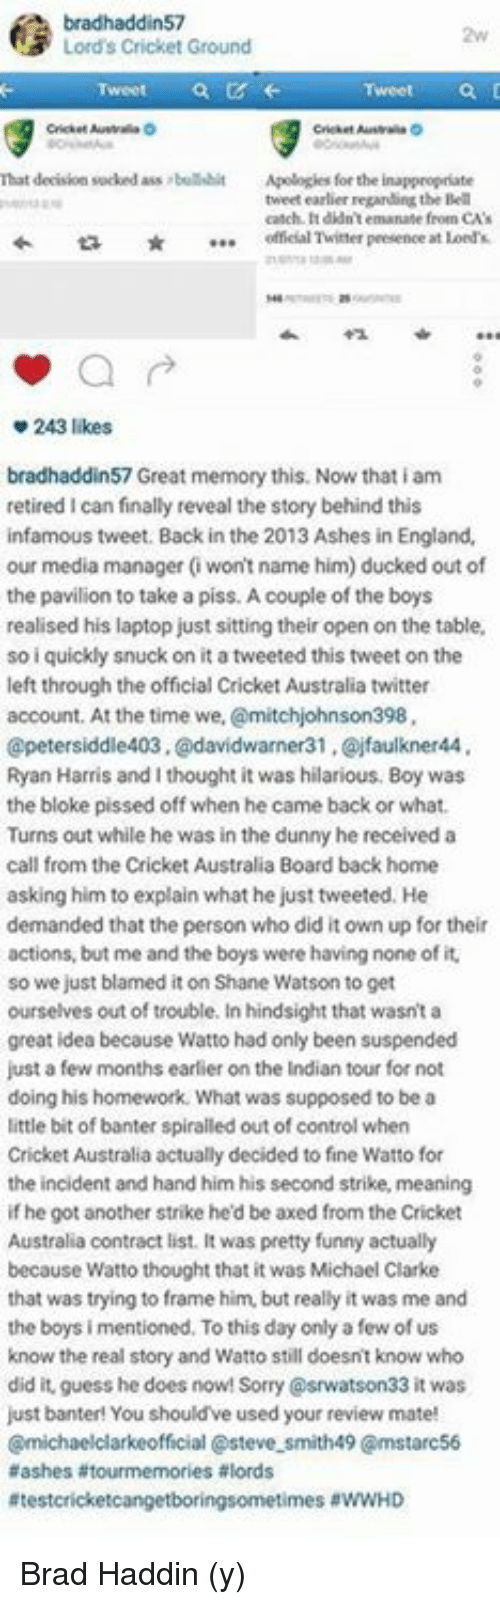 emanate: bradhaddin57  N3 Lord's Cricket Ground  That decision sucked ass bullshit  Apologies for the inappropriate  tweet earlier regarding the Bell  catch. didn't emanate feoen CA's  offeial Twitter presence  at Lord  243 likes  bradhaddin57 Great memory this. Now that iam  retired I can finally reveal the story behind this  infamous tweet. Back in the 2013 Ashes in England.  our media manager (won't name him) ducked out of  the pavilion to take a piss. Acouple of the boys  realised his laptop just sitting their open on the table,  so i quickly snuck on it atweeted this tweet on the  left through the official cricket Australia twitter  account. At the time we,  @mitchjohnson398,  petersiddle403.@davidwarner31 ,Qojfaulkner44  Ryan Harris and I thought it was hilarious. Boy was  the bloke pissed off when he came back or what.  Turns out while he was in the dunny hereceived a  call from the Cricket Australia Board back home  asking him to explain what he just tweeted. He  demanded that the person who did it own up fortheir  actions, but me and the boys were having none of it.  so we just blamed it on Shane Watson to get  ourselves out of trouble. In hindsight that wasn't a  great idea because Watto had only been suspended  just a few months earlier on the Indian tour for not  doing his homework. What was supposed to be a  little bit of banter spiralled out of control when  Cricket Australia actually decided to fine Watto for  the incident and hand him his second strike, meaning  if he got another strike he'd be axed from the Cricket  Australia contract list. It was pretty funny actually  because Watto thought that it was Michael Clarke  that was trying to frame him, but really it was me and  the boys i mentioned. To this day only a few of us  know the real story and Watto still doesnt know who  did it, guess he does now! 33 it was  just banter! You should've used your review mate!  Cmichaelclarkeofficial asteve smith49 Cmstarc56  aashes tourmemories alords  Atestcric